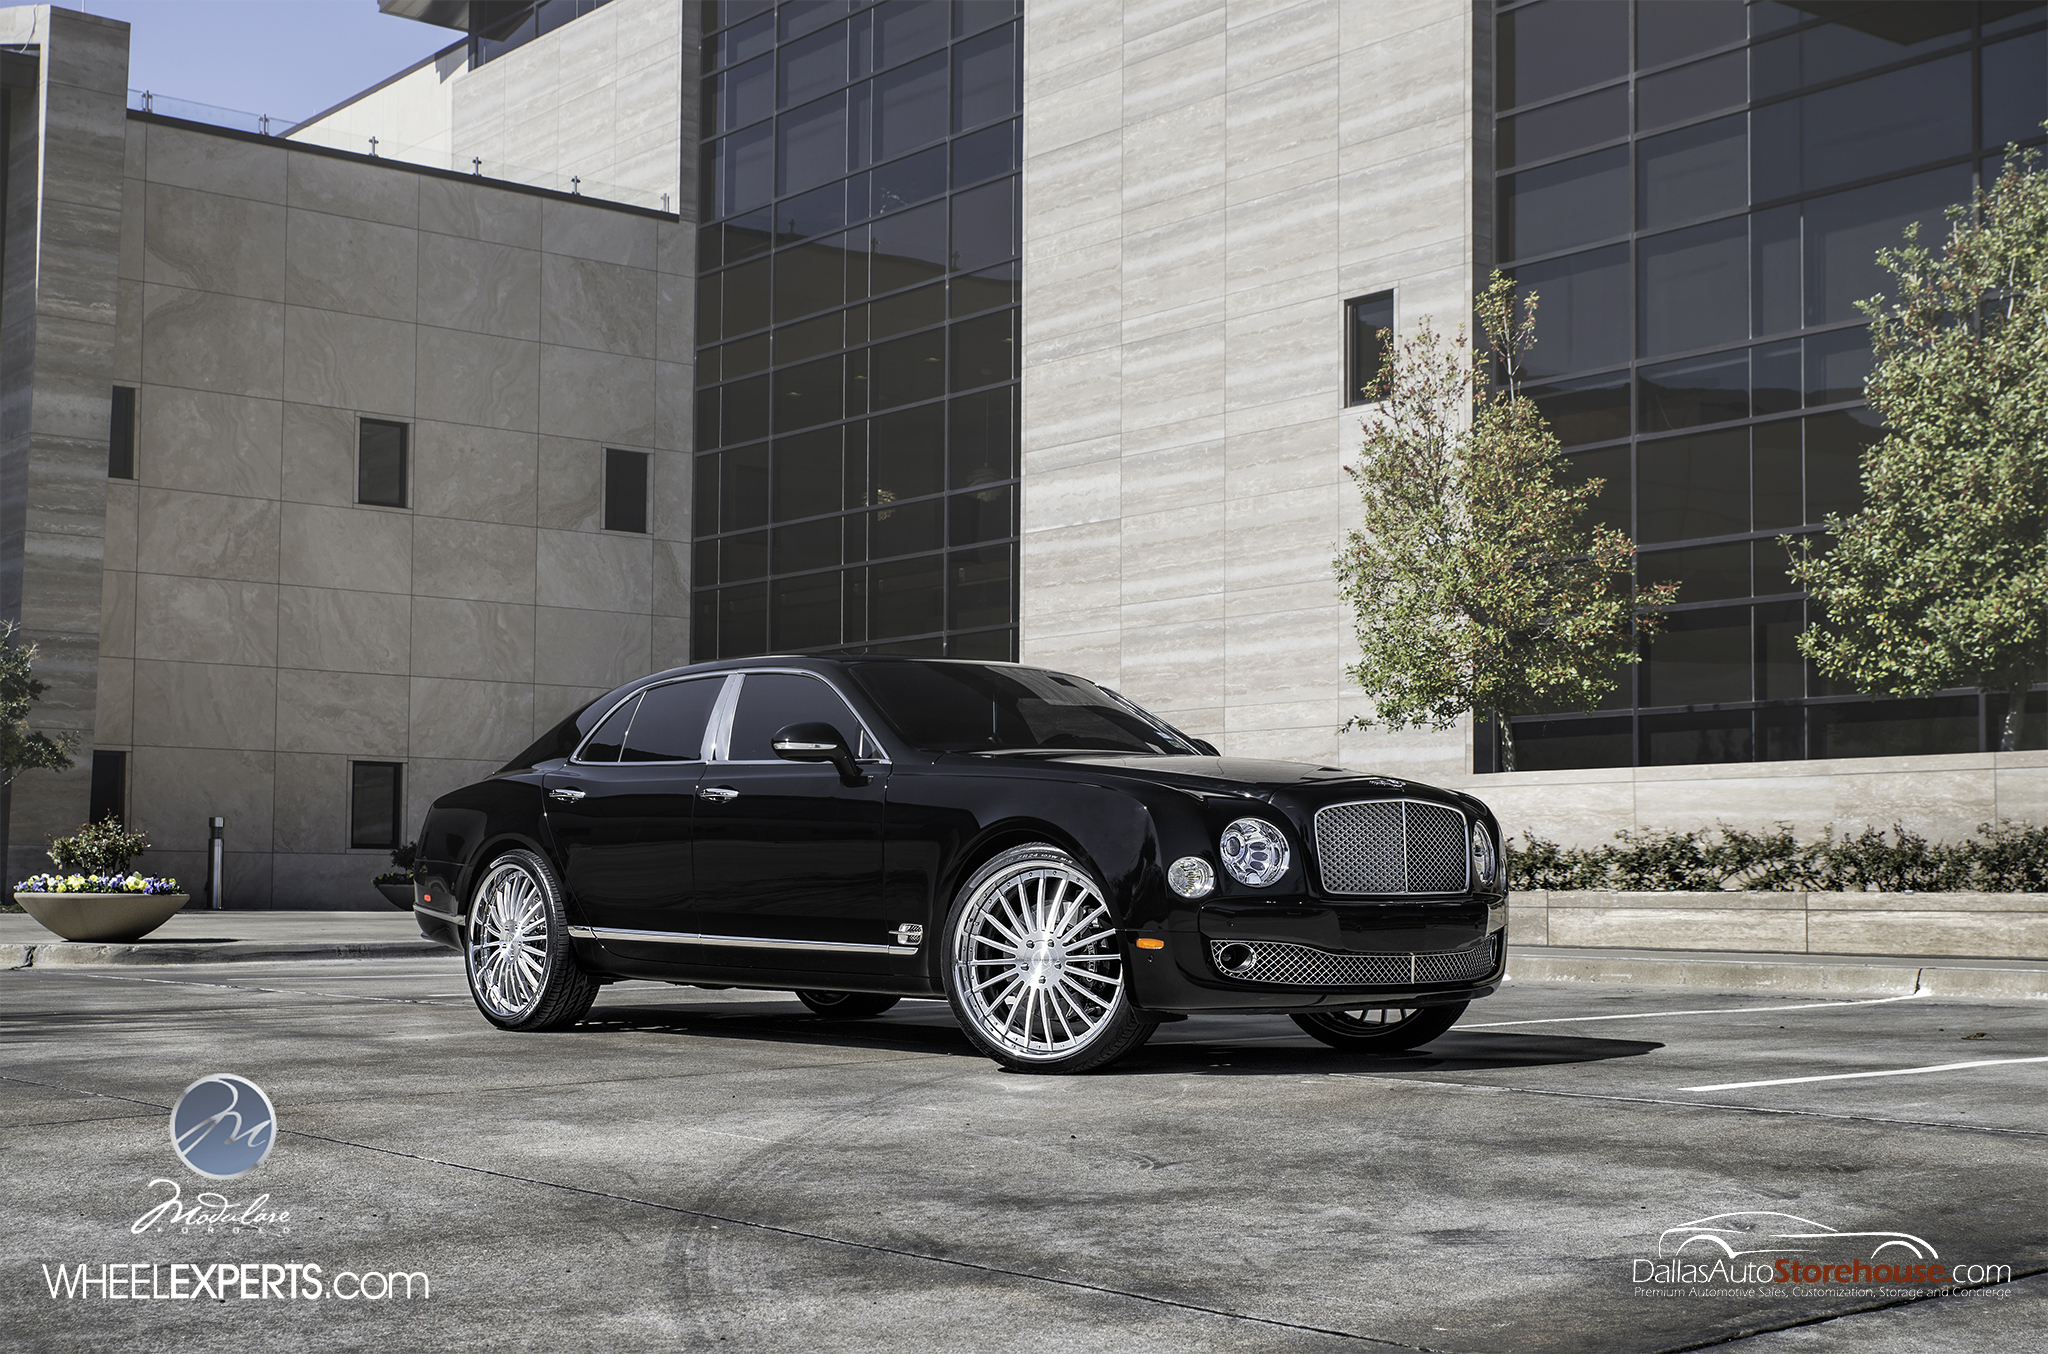 photo 4 Bentley Mulsanne Wheels Modulare M20 24x10.0, ET , tire size 285/30 R24. x ET